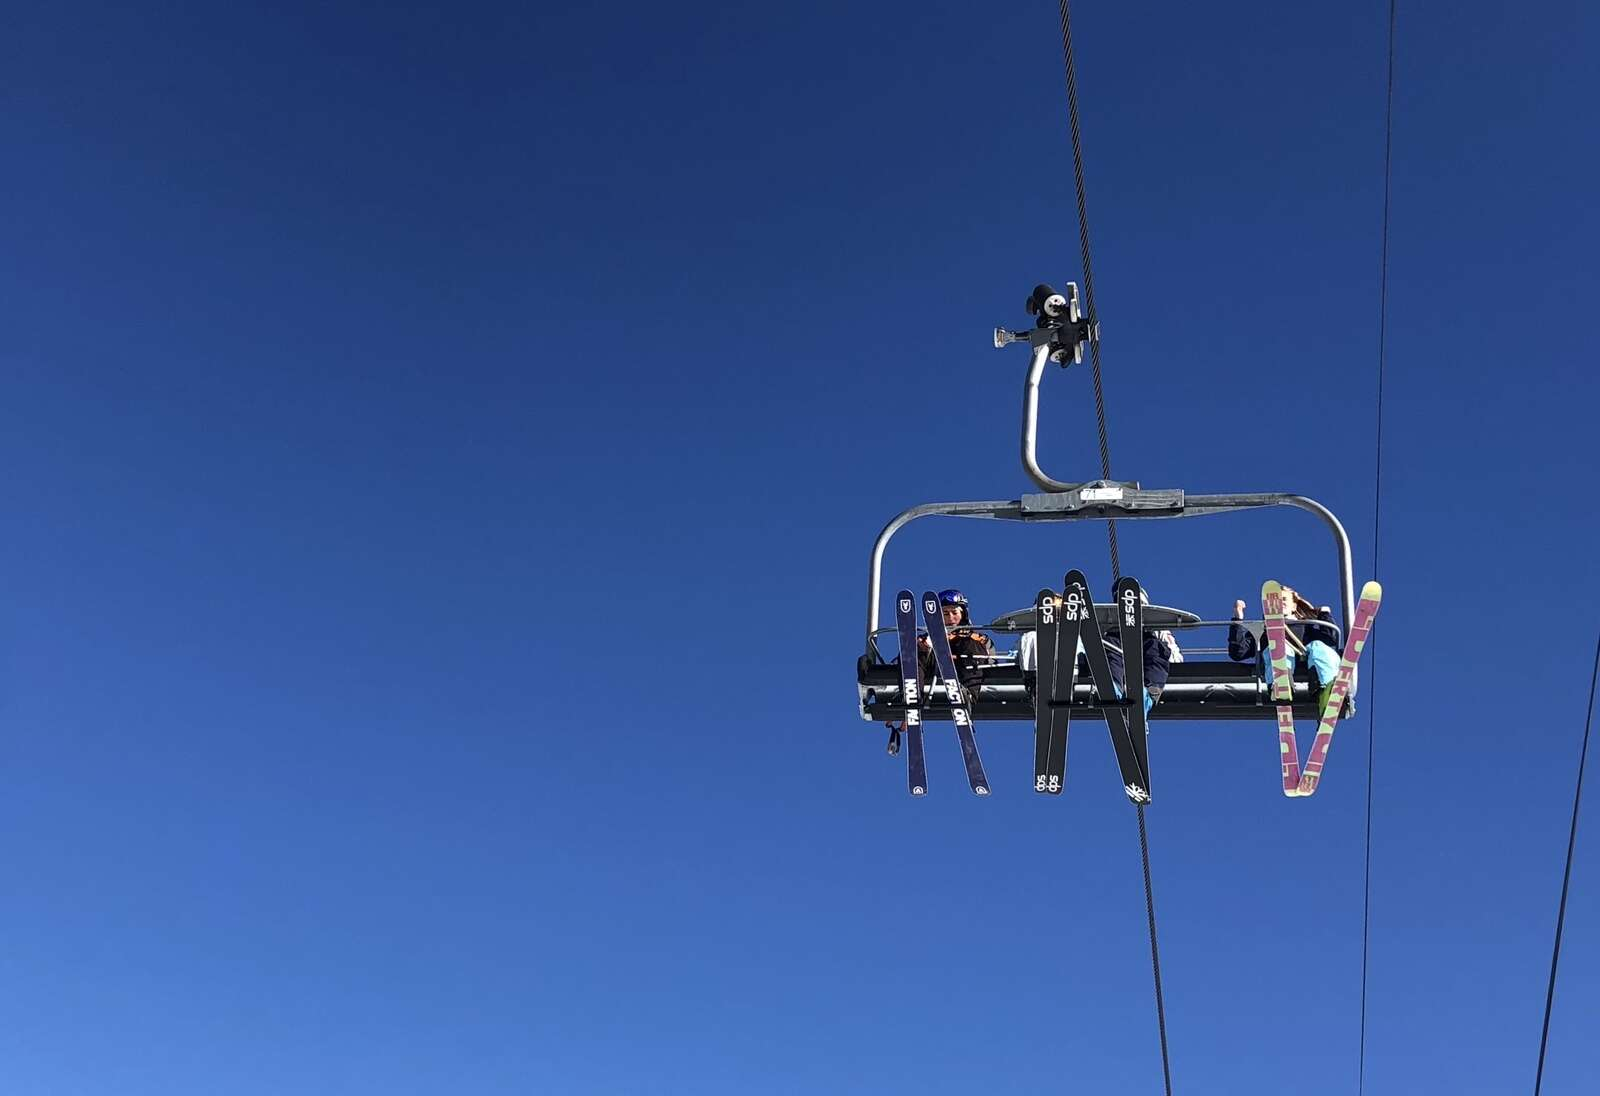 A group of four skiers ride the Village Express chairlift on opening day at Snowmass. Per the resort's COVID-19 lift policy,